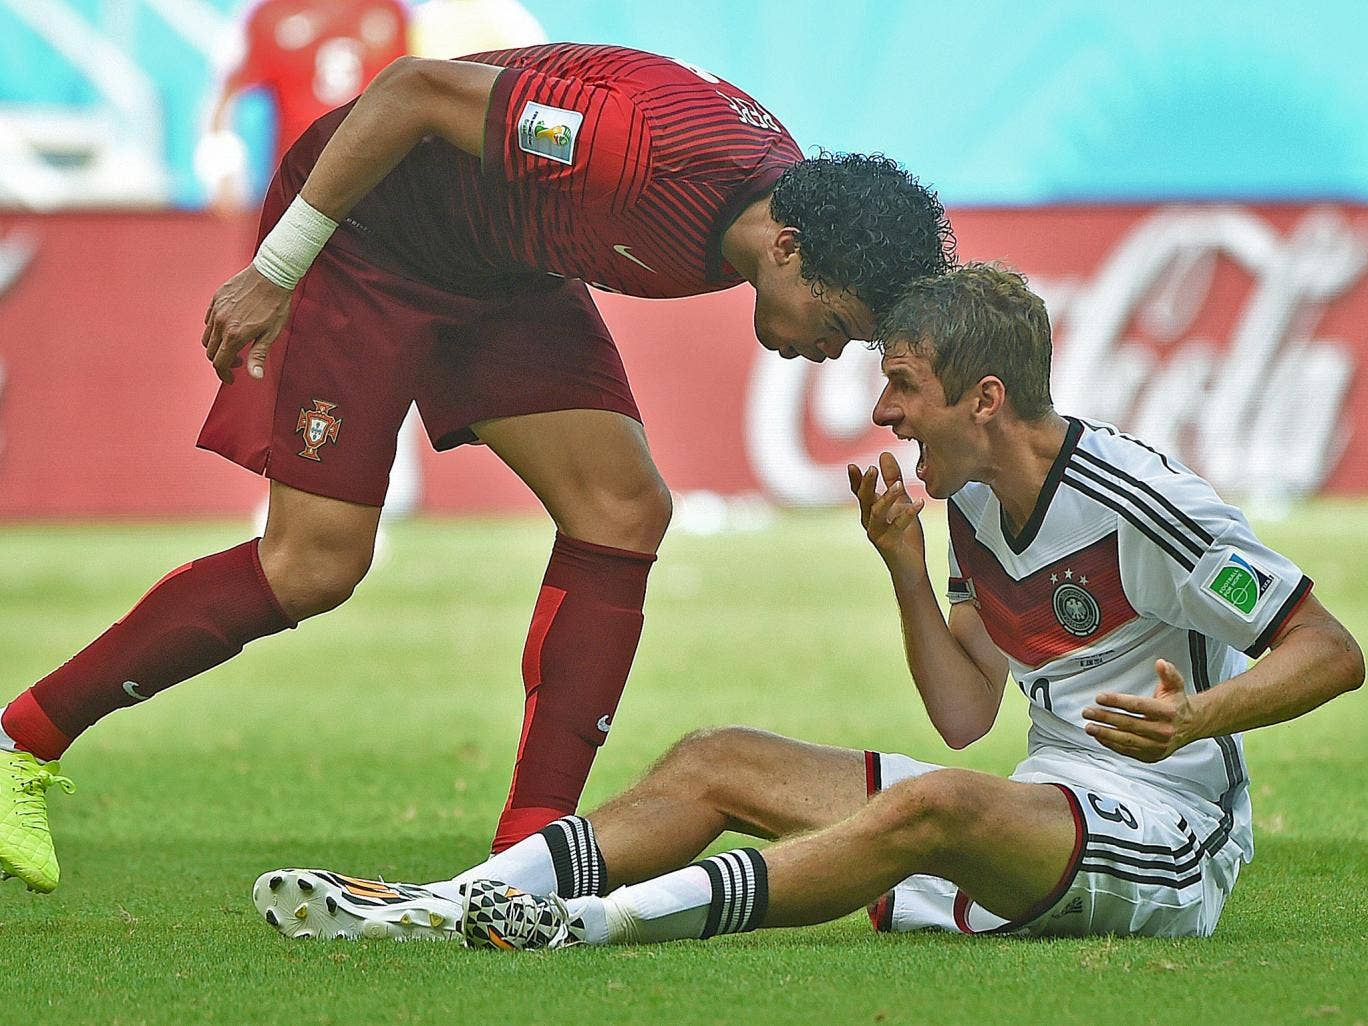 Call that a head-butt? Pepe sins by placing his head on Thomas Müller's for which he is promptly sent off